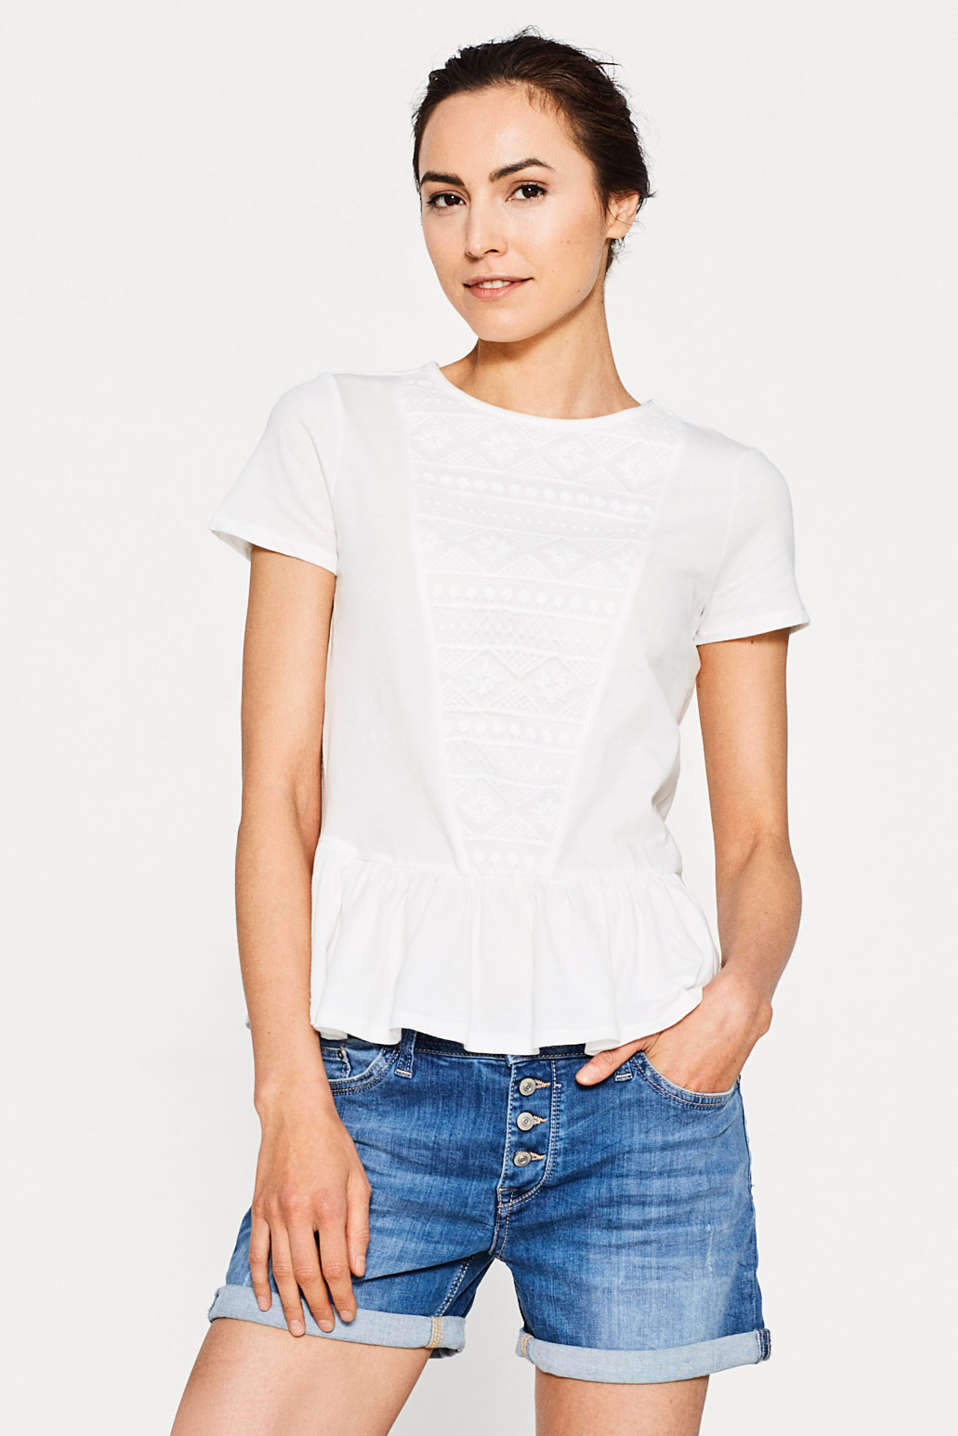 Loose Tshirts Online. Shop for Loose Tshirts in India Buy latest range of Loose Tshirts at Myntra Free Shipping COD 30 Day Returns.